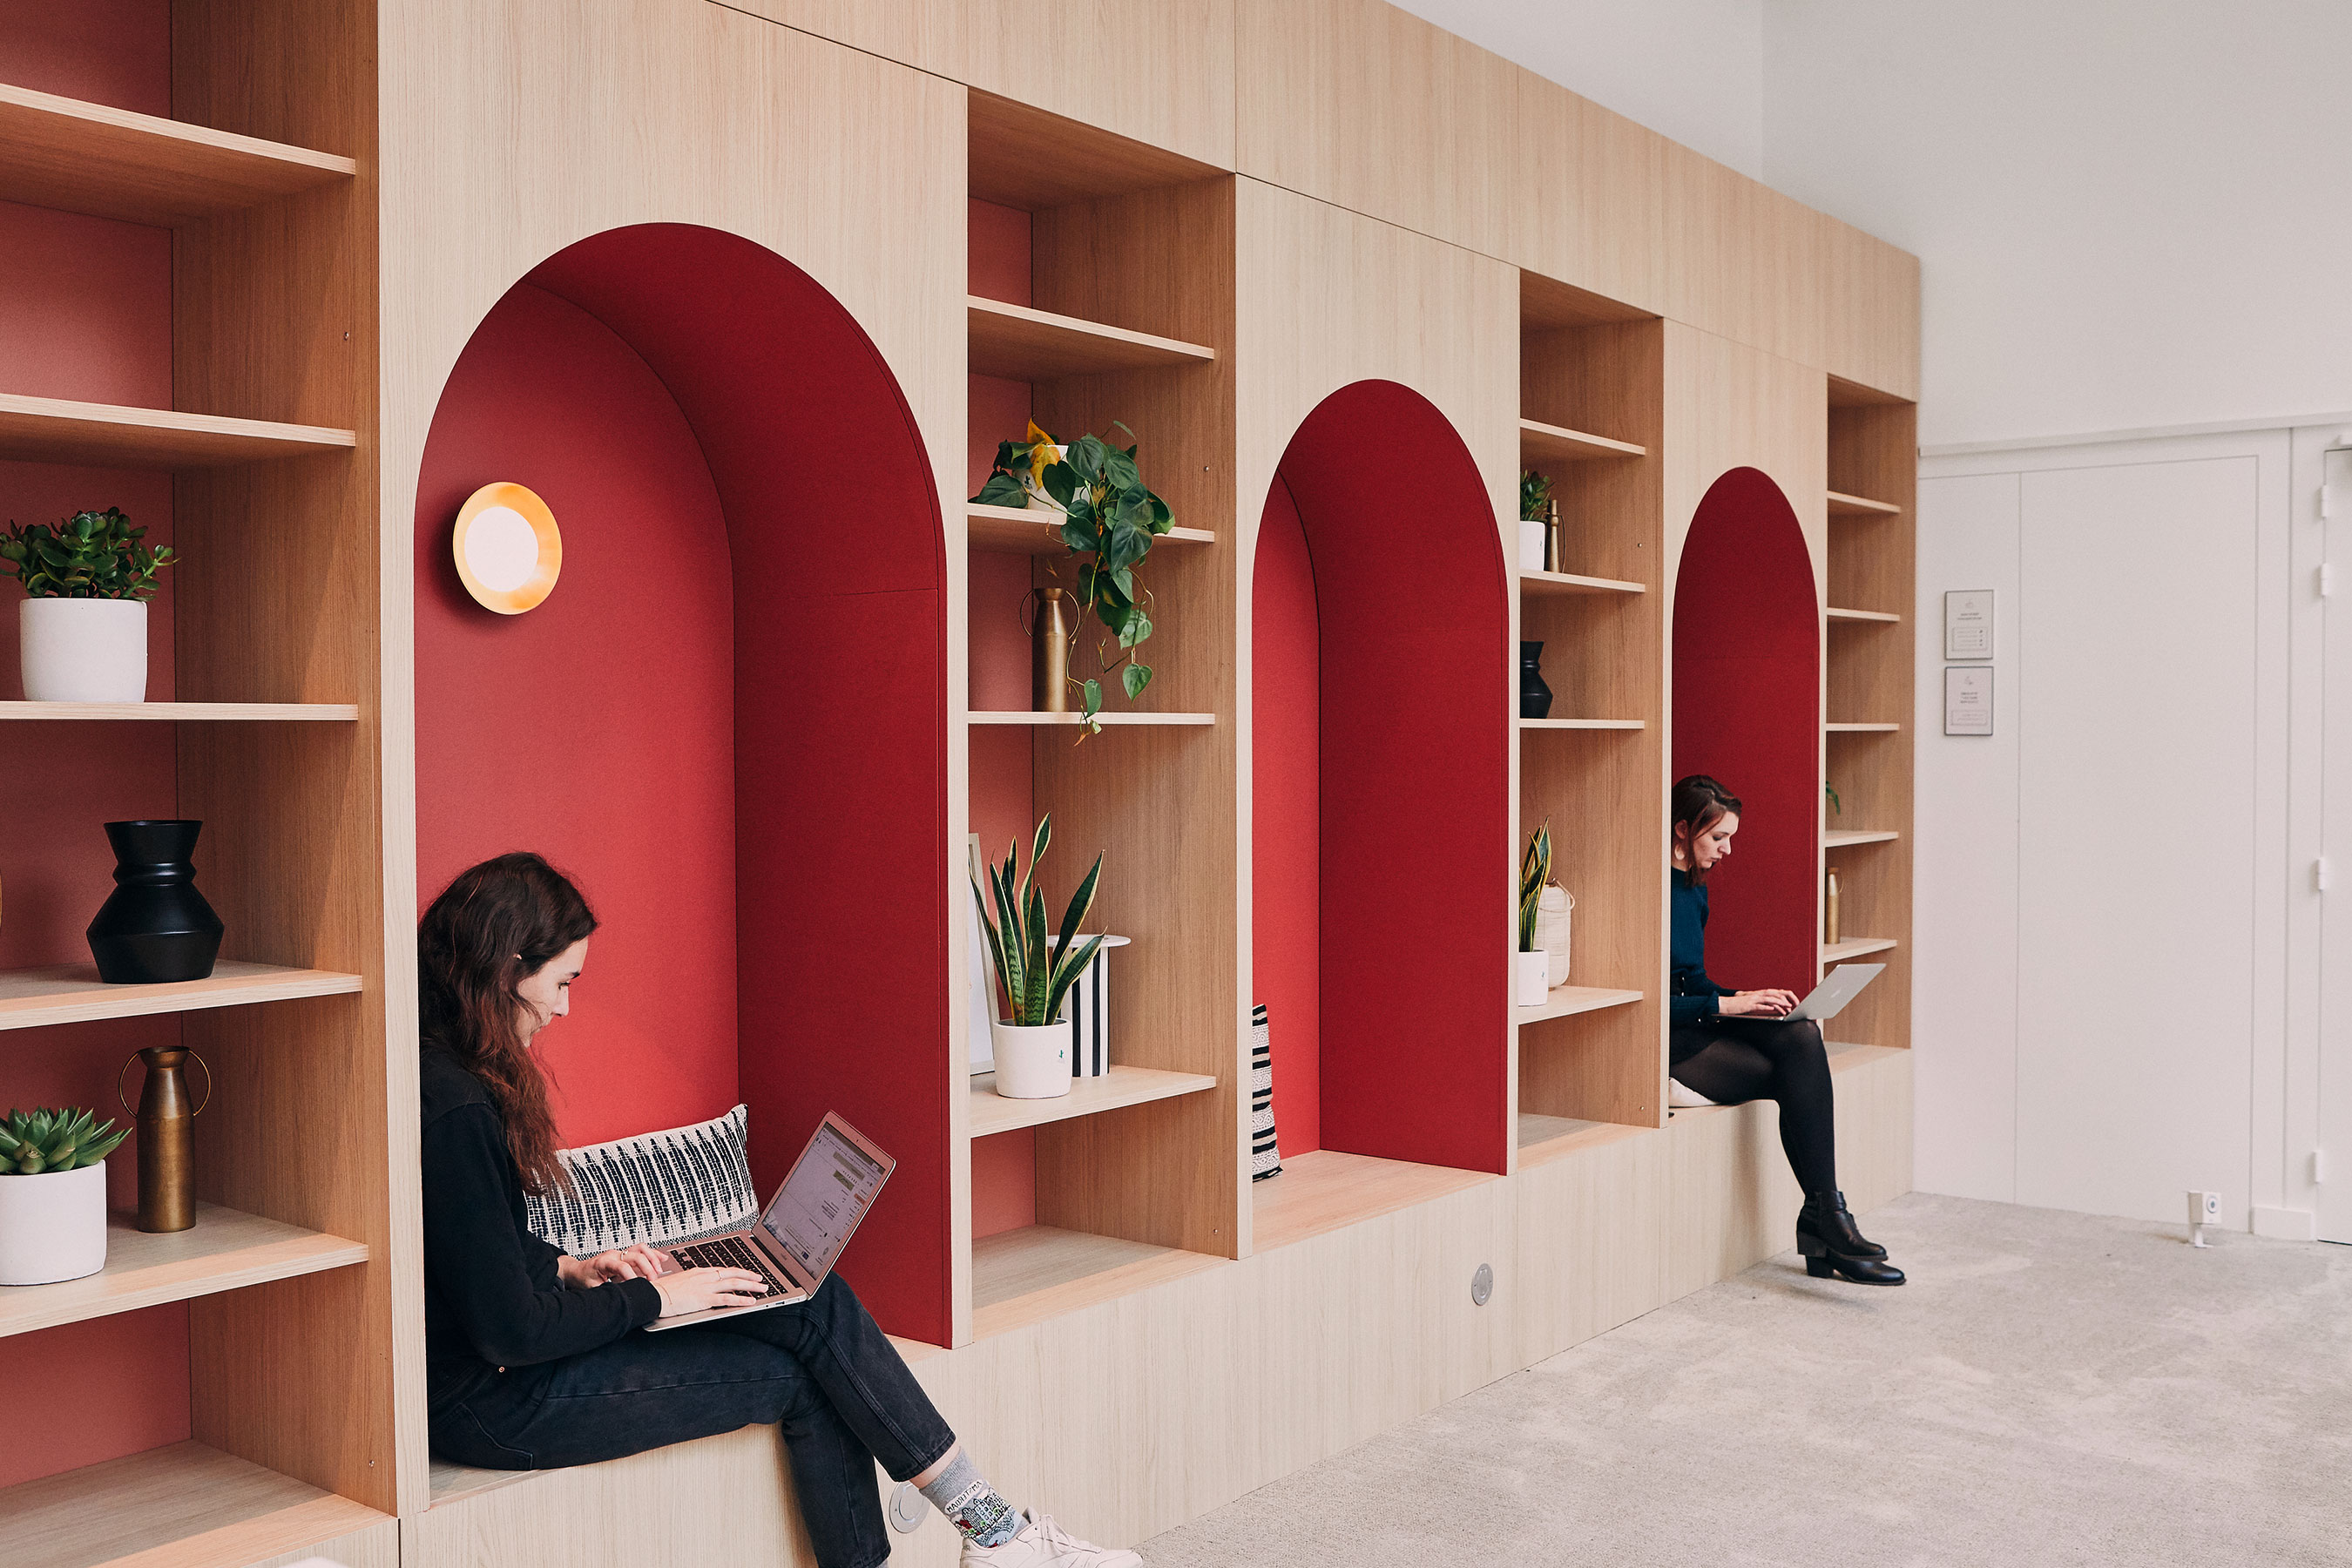 coworking Champs-Elysees - Espace commun Alcove